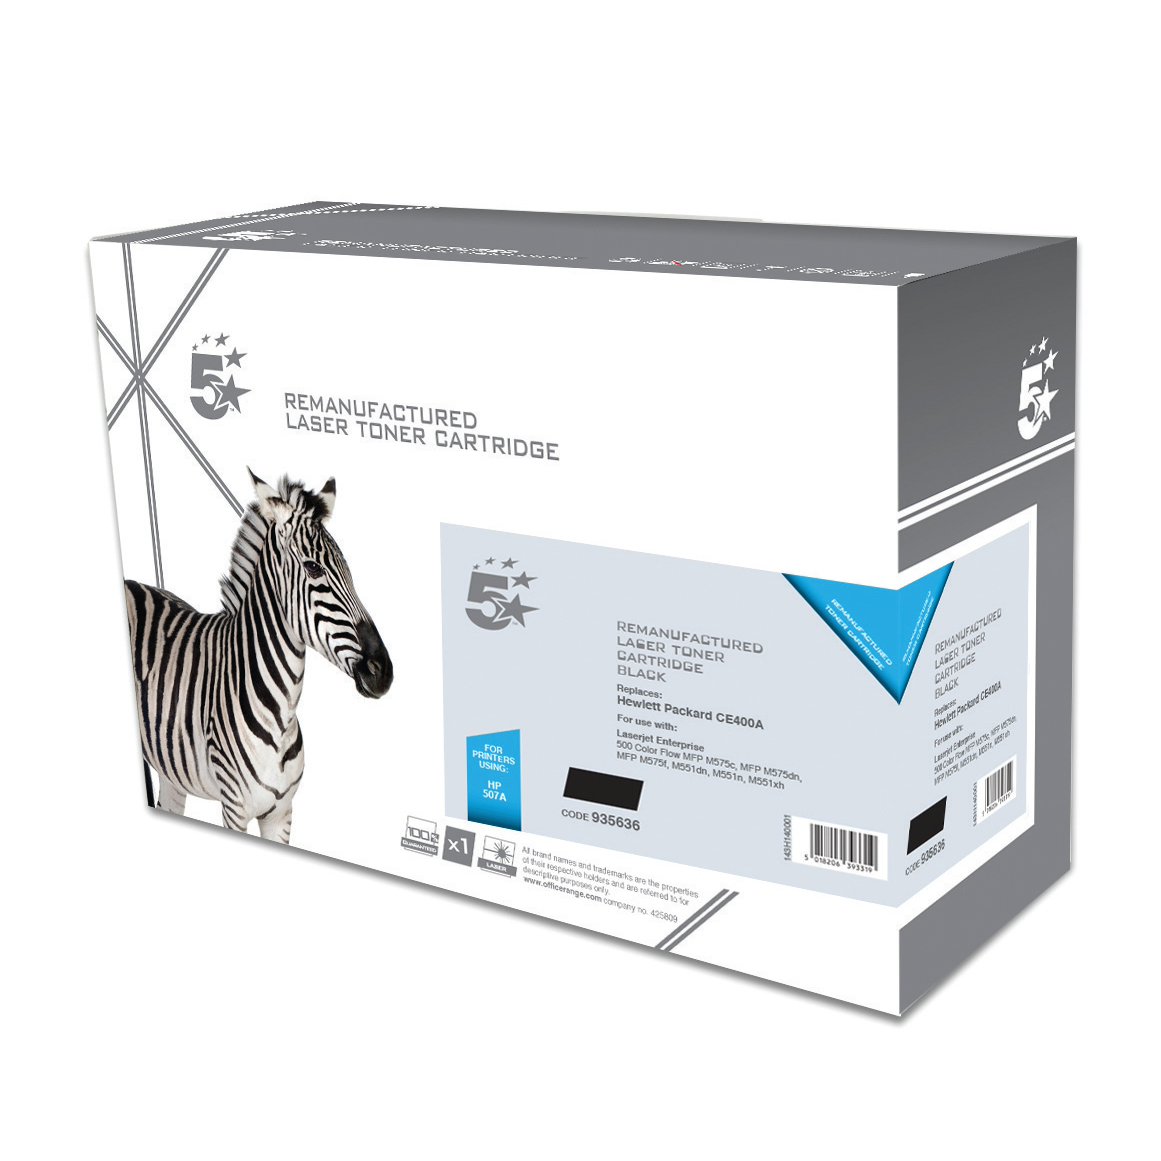 5 Star Office Remanufactured Laser Toner Cartridge 5500pp Black [HP 507A CE400A Alternative]